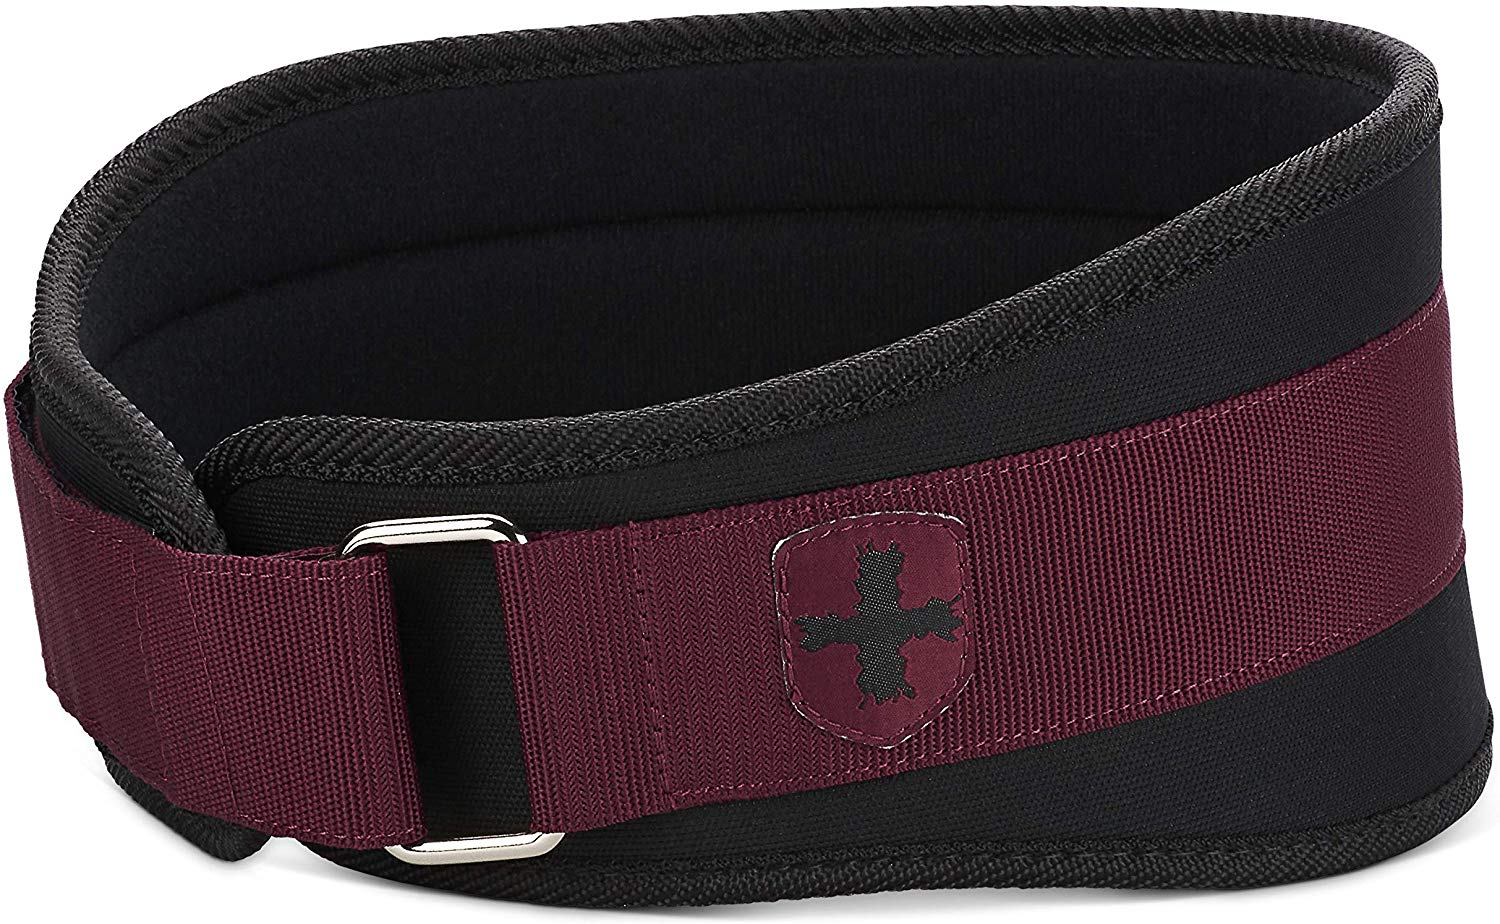 Harbinger Women's Foam Core Ultralight Weightlifting Belt